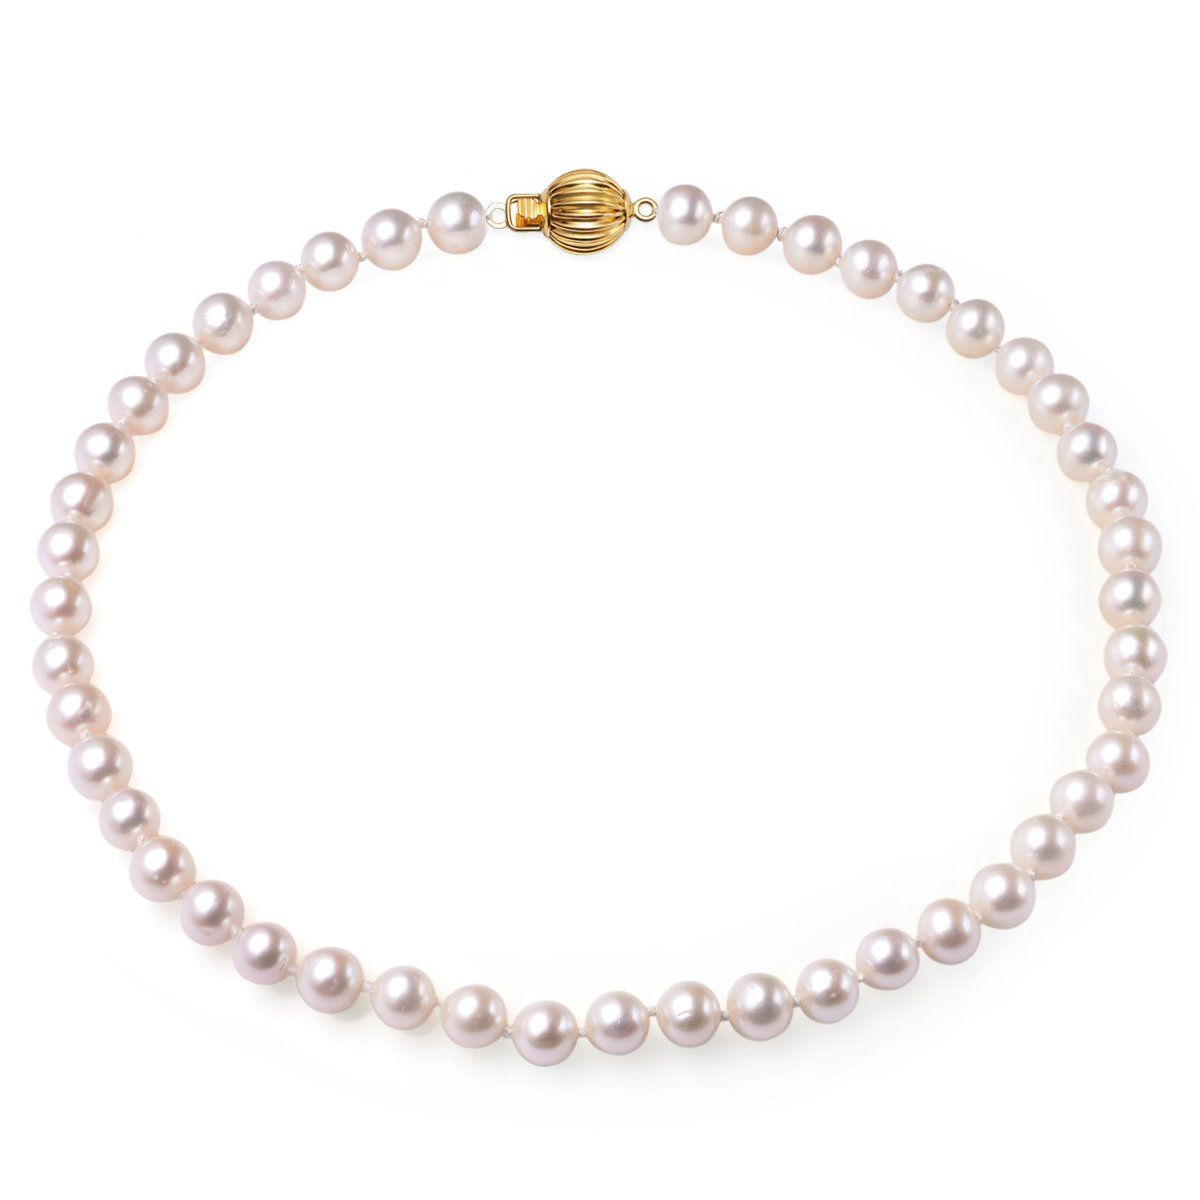 white 9-10mm aa+ quality cultured freshwater pearl necklace with 14k solid yellow gold fluted ball